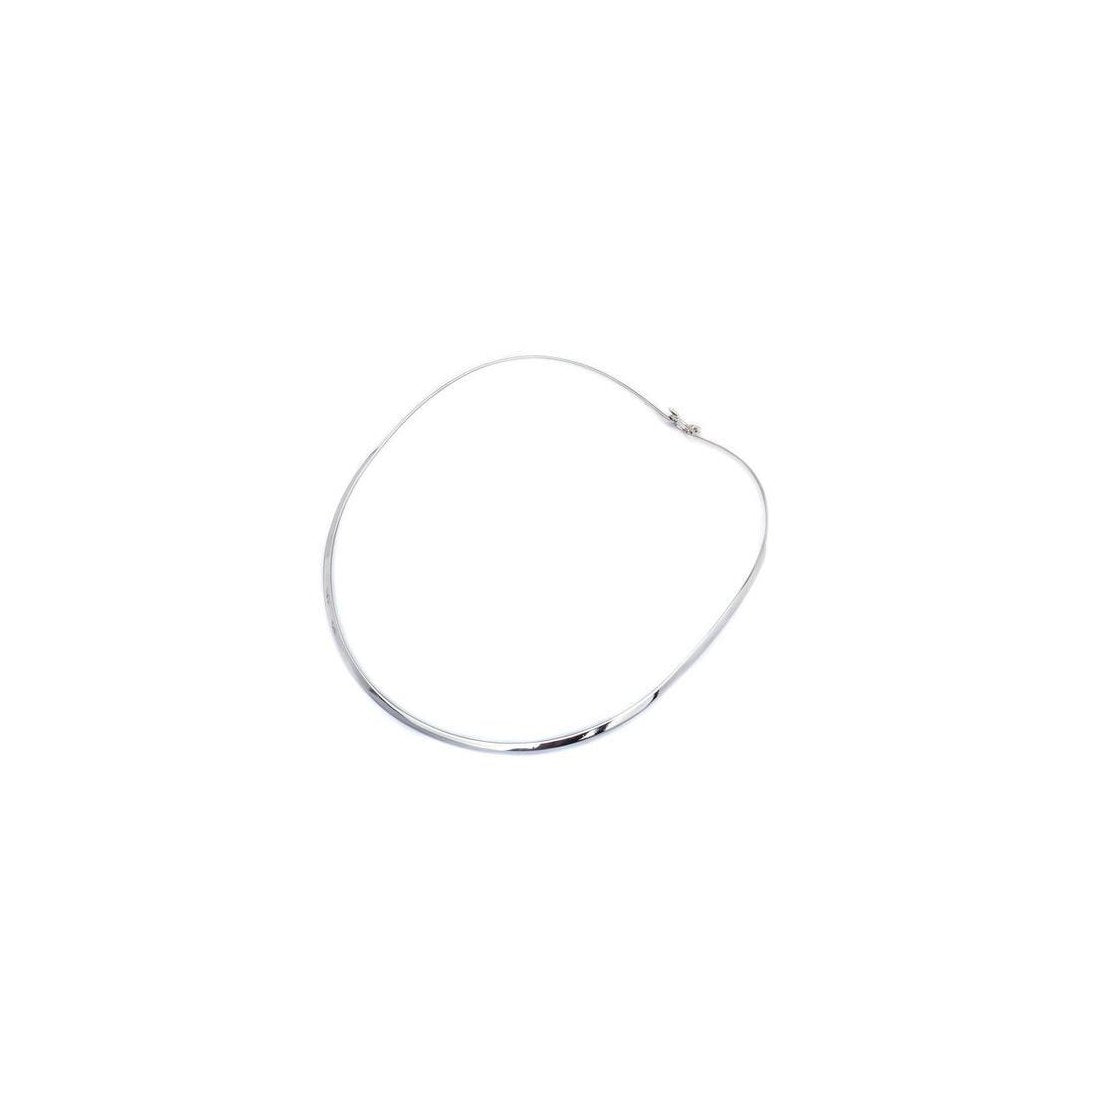 3MM Plain Flat Choker Chain .925 Sterling Silver With Clasp-5.5""